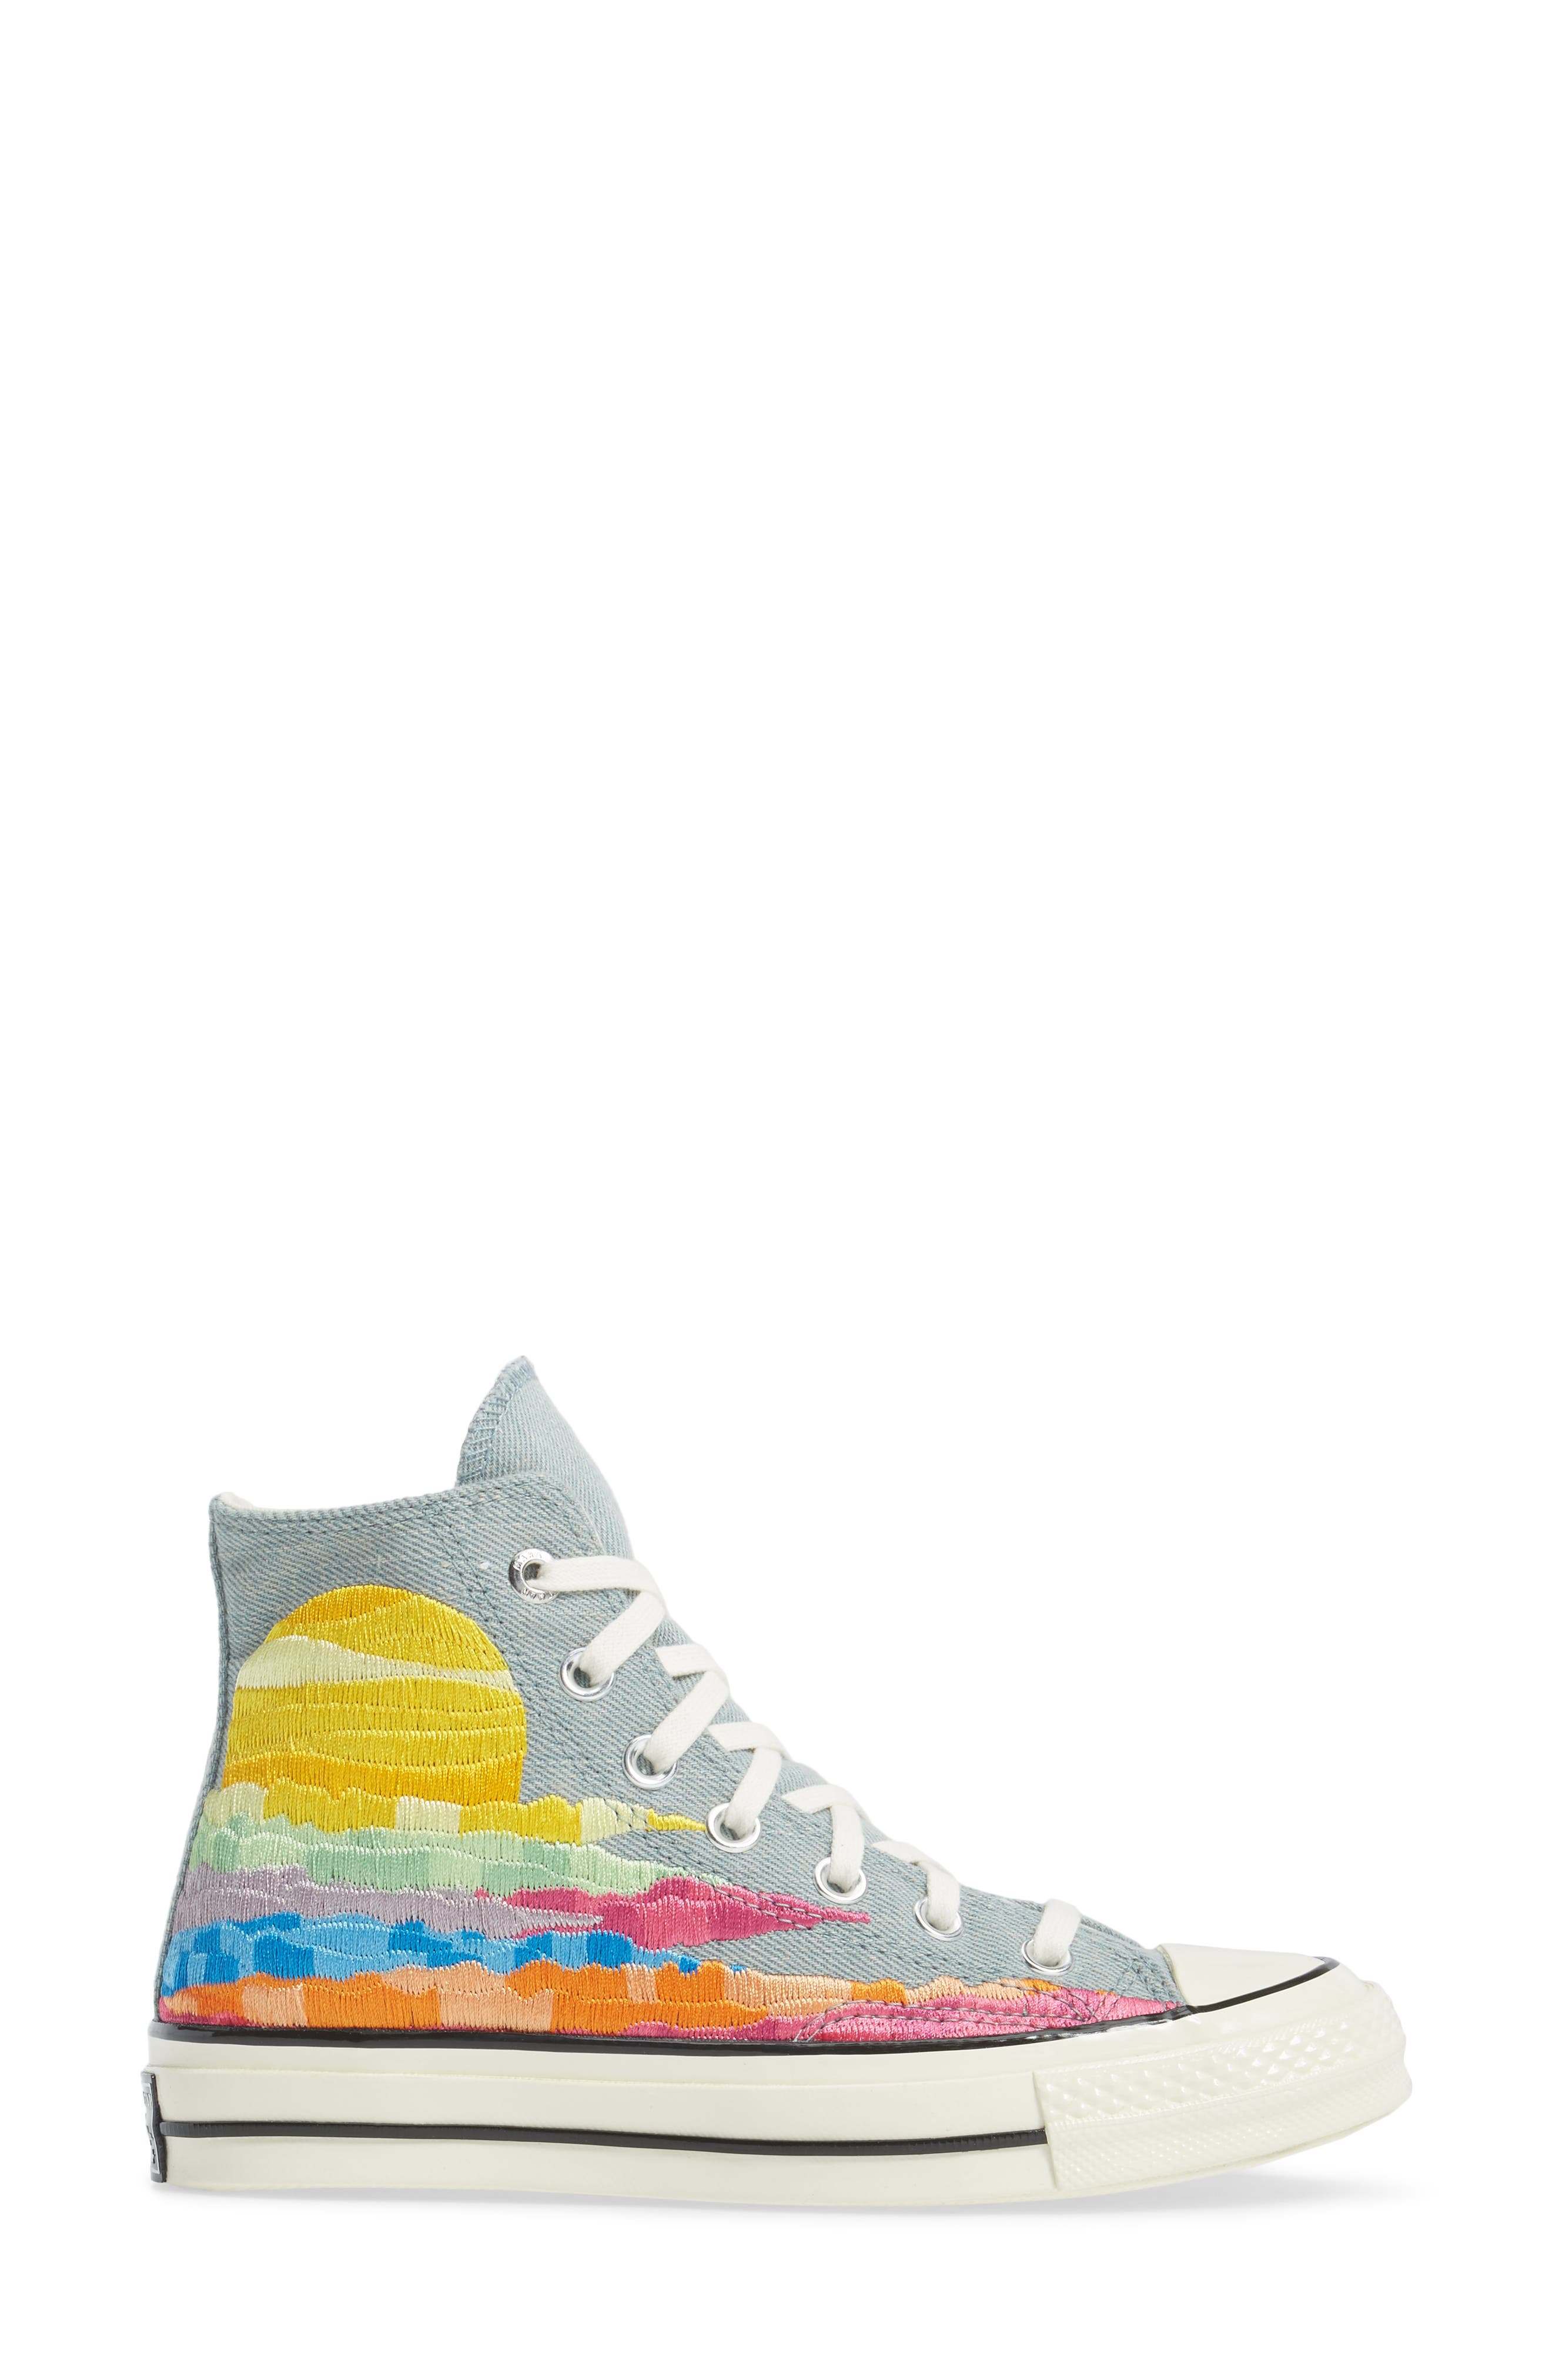 x Mara Hoffman All Star<sup>®</sup> Embroidered High Top Sneaker,                             Alternate thumbnail 6, color,